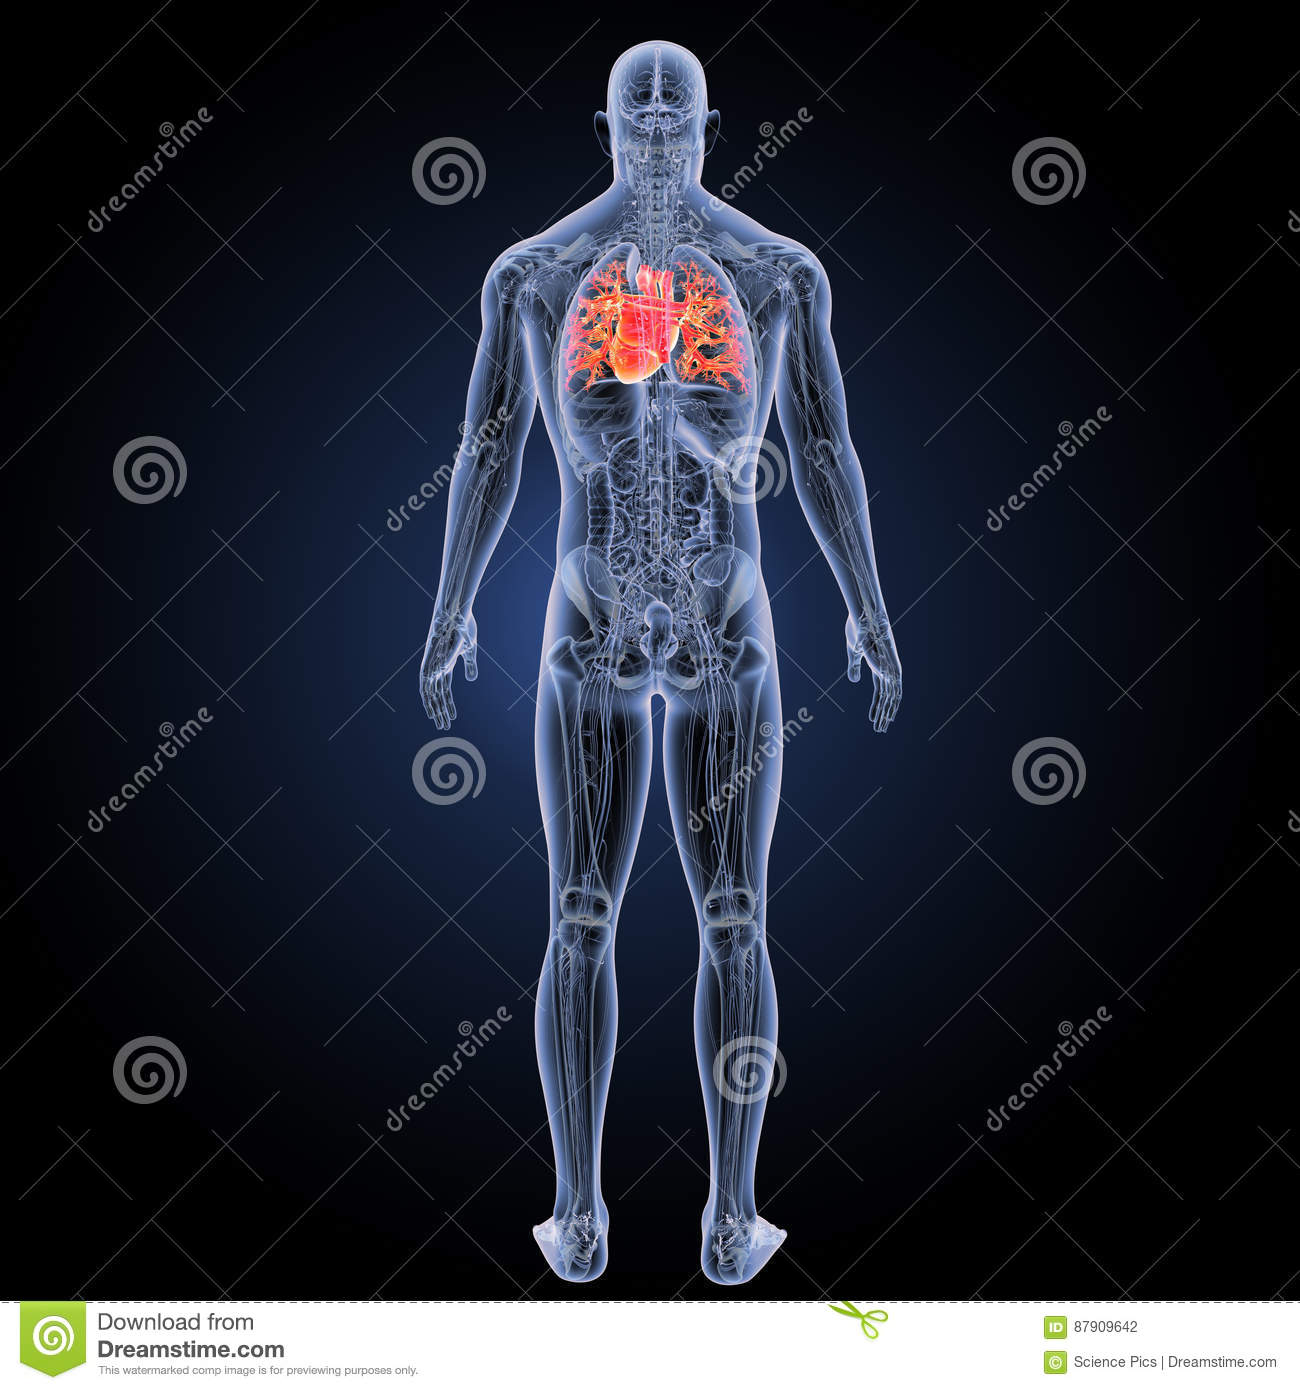 Human heart with anatomy posterior view stock photo image of download human heart with anatomy posterior view stock photo image of atrioventricular carotid ccuart Choice Image